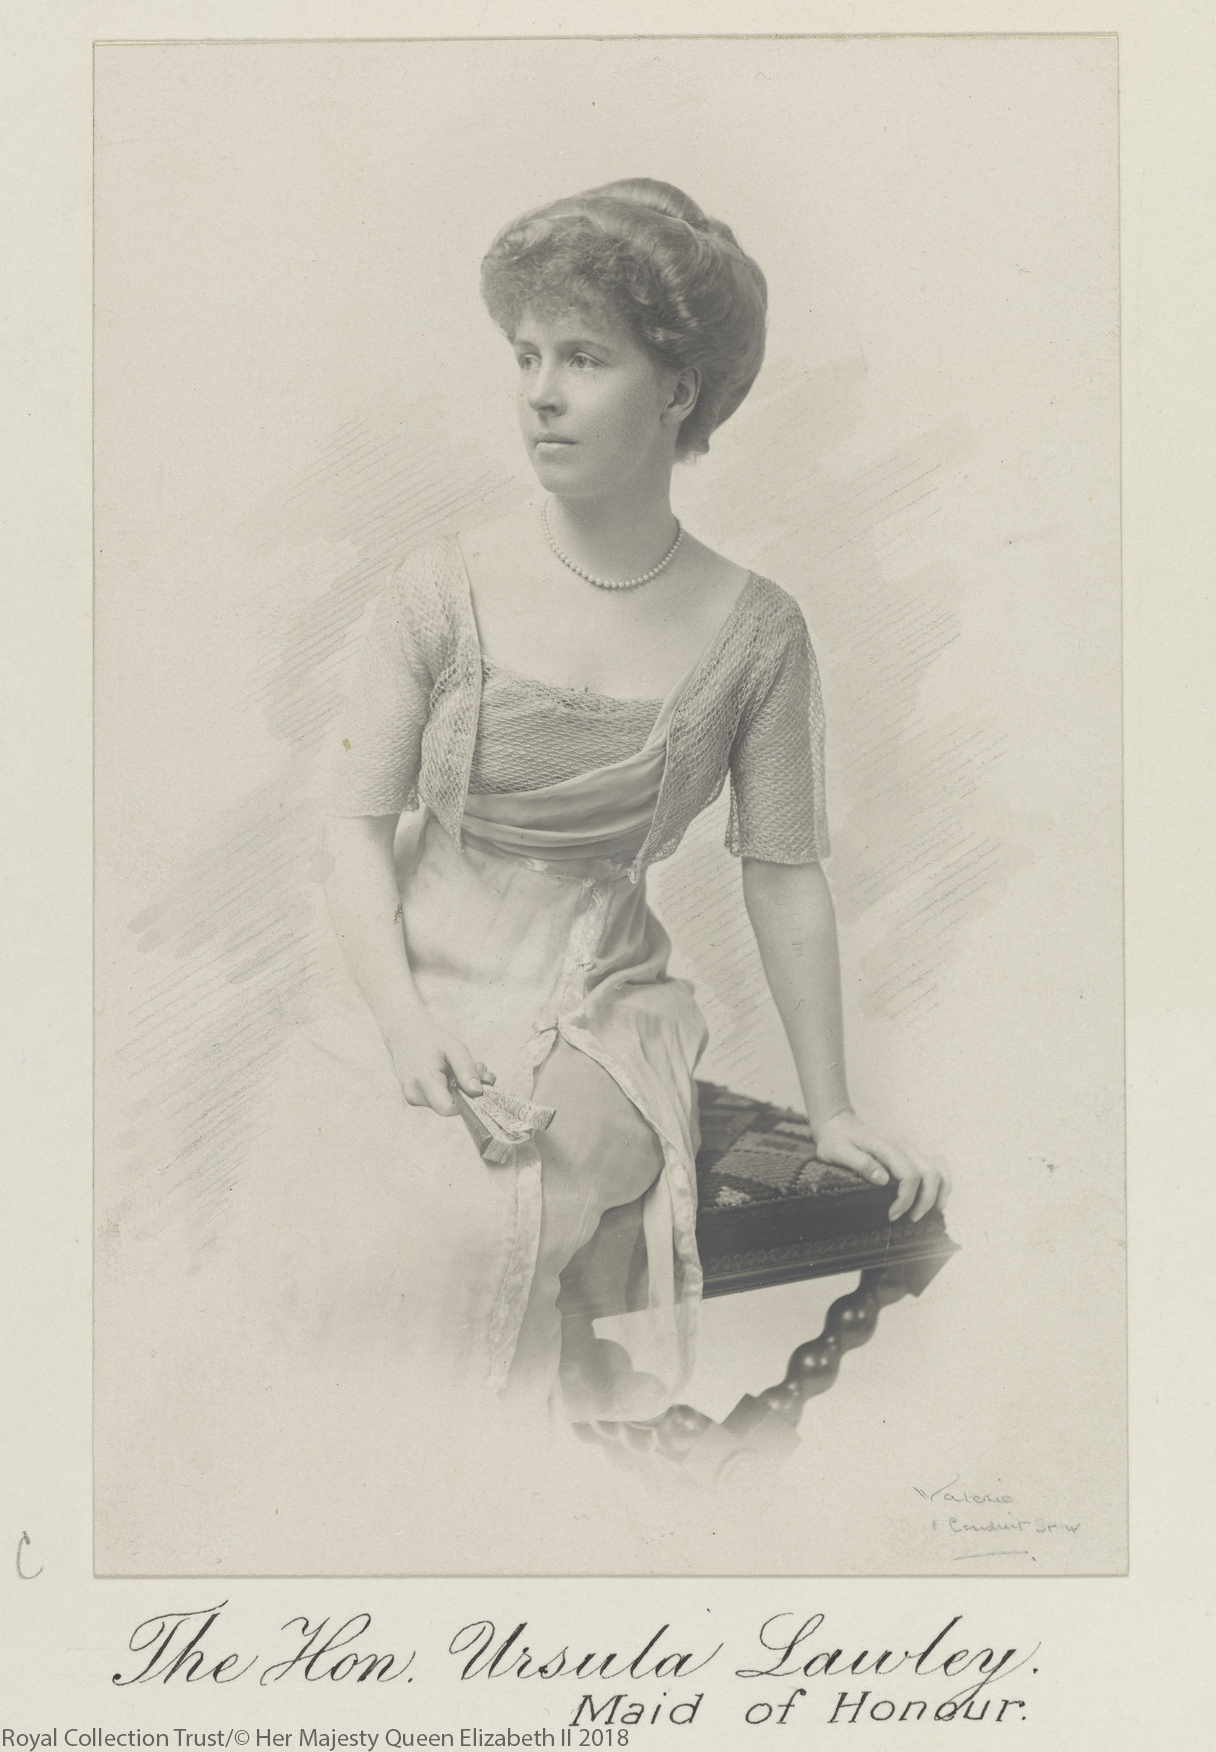 Ursula Mary Lawley